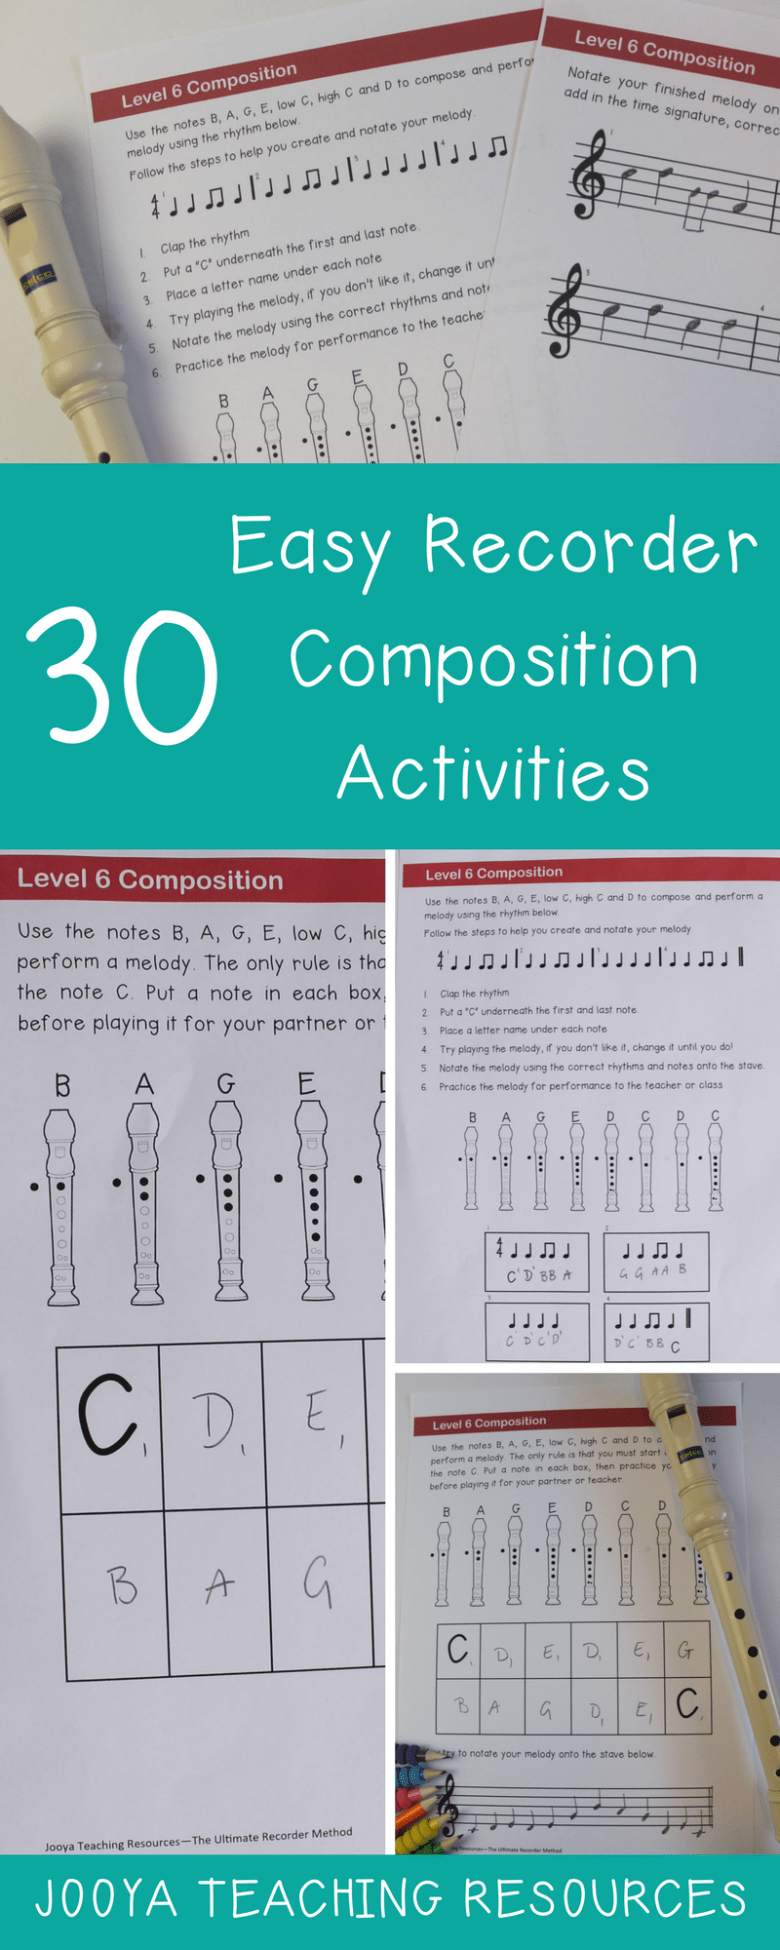 Easy Recorder Composition Blog Post from Jooya Teaching Resources